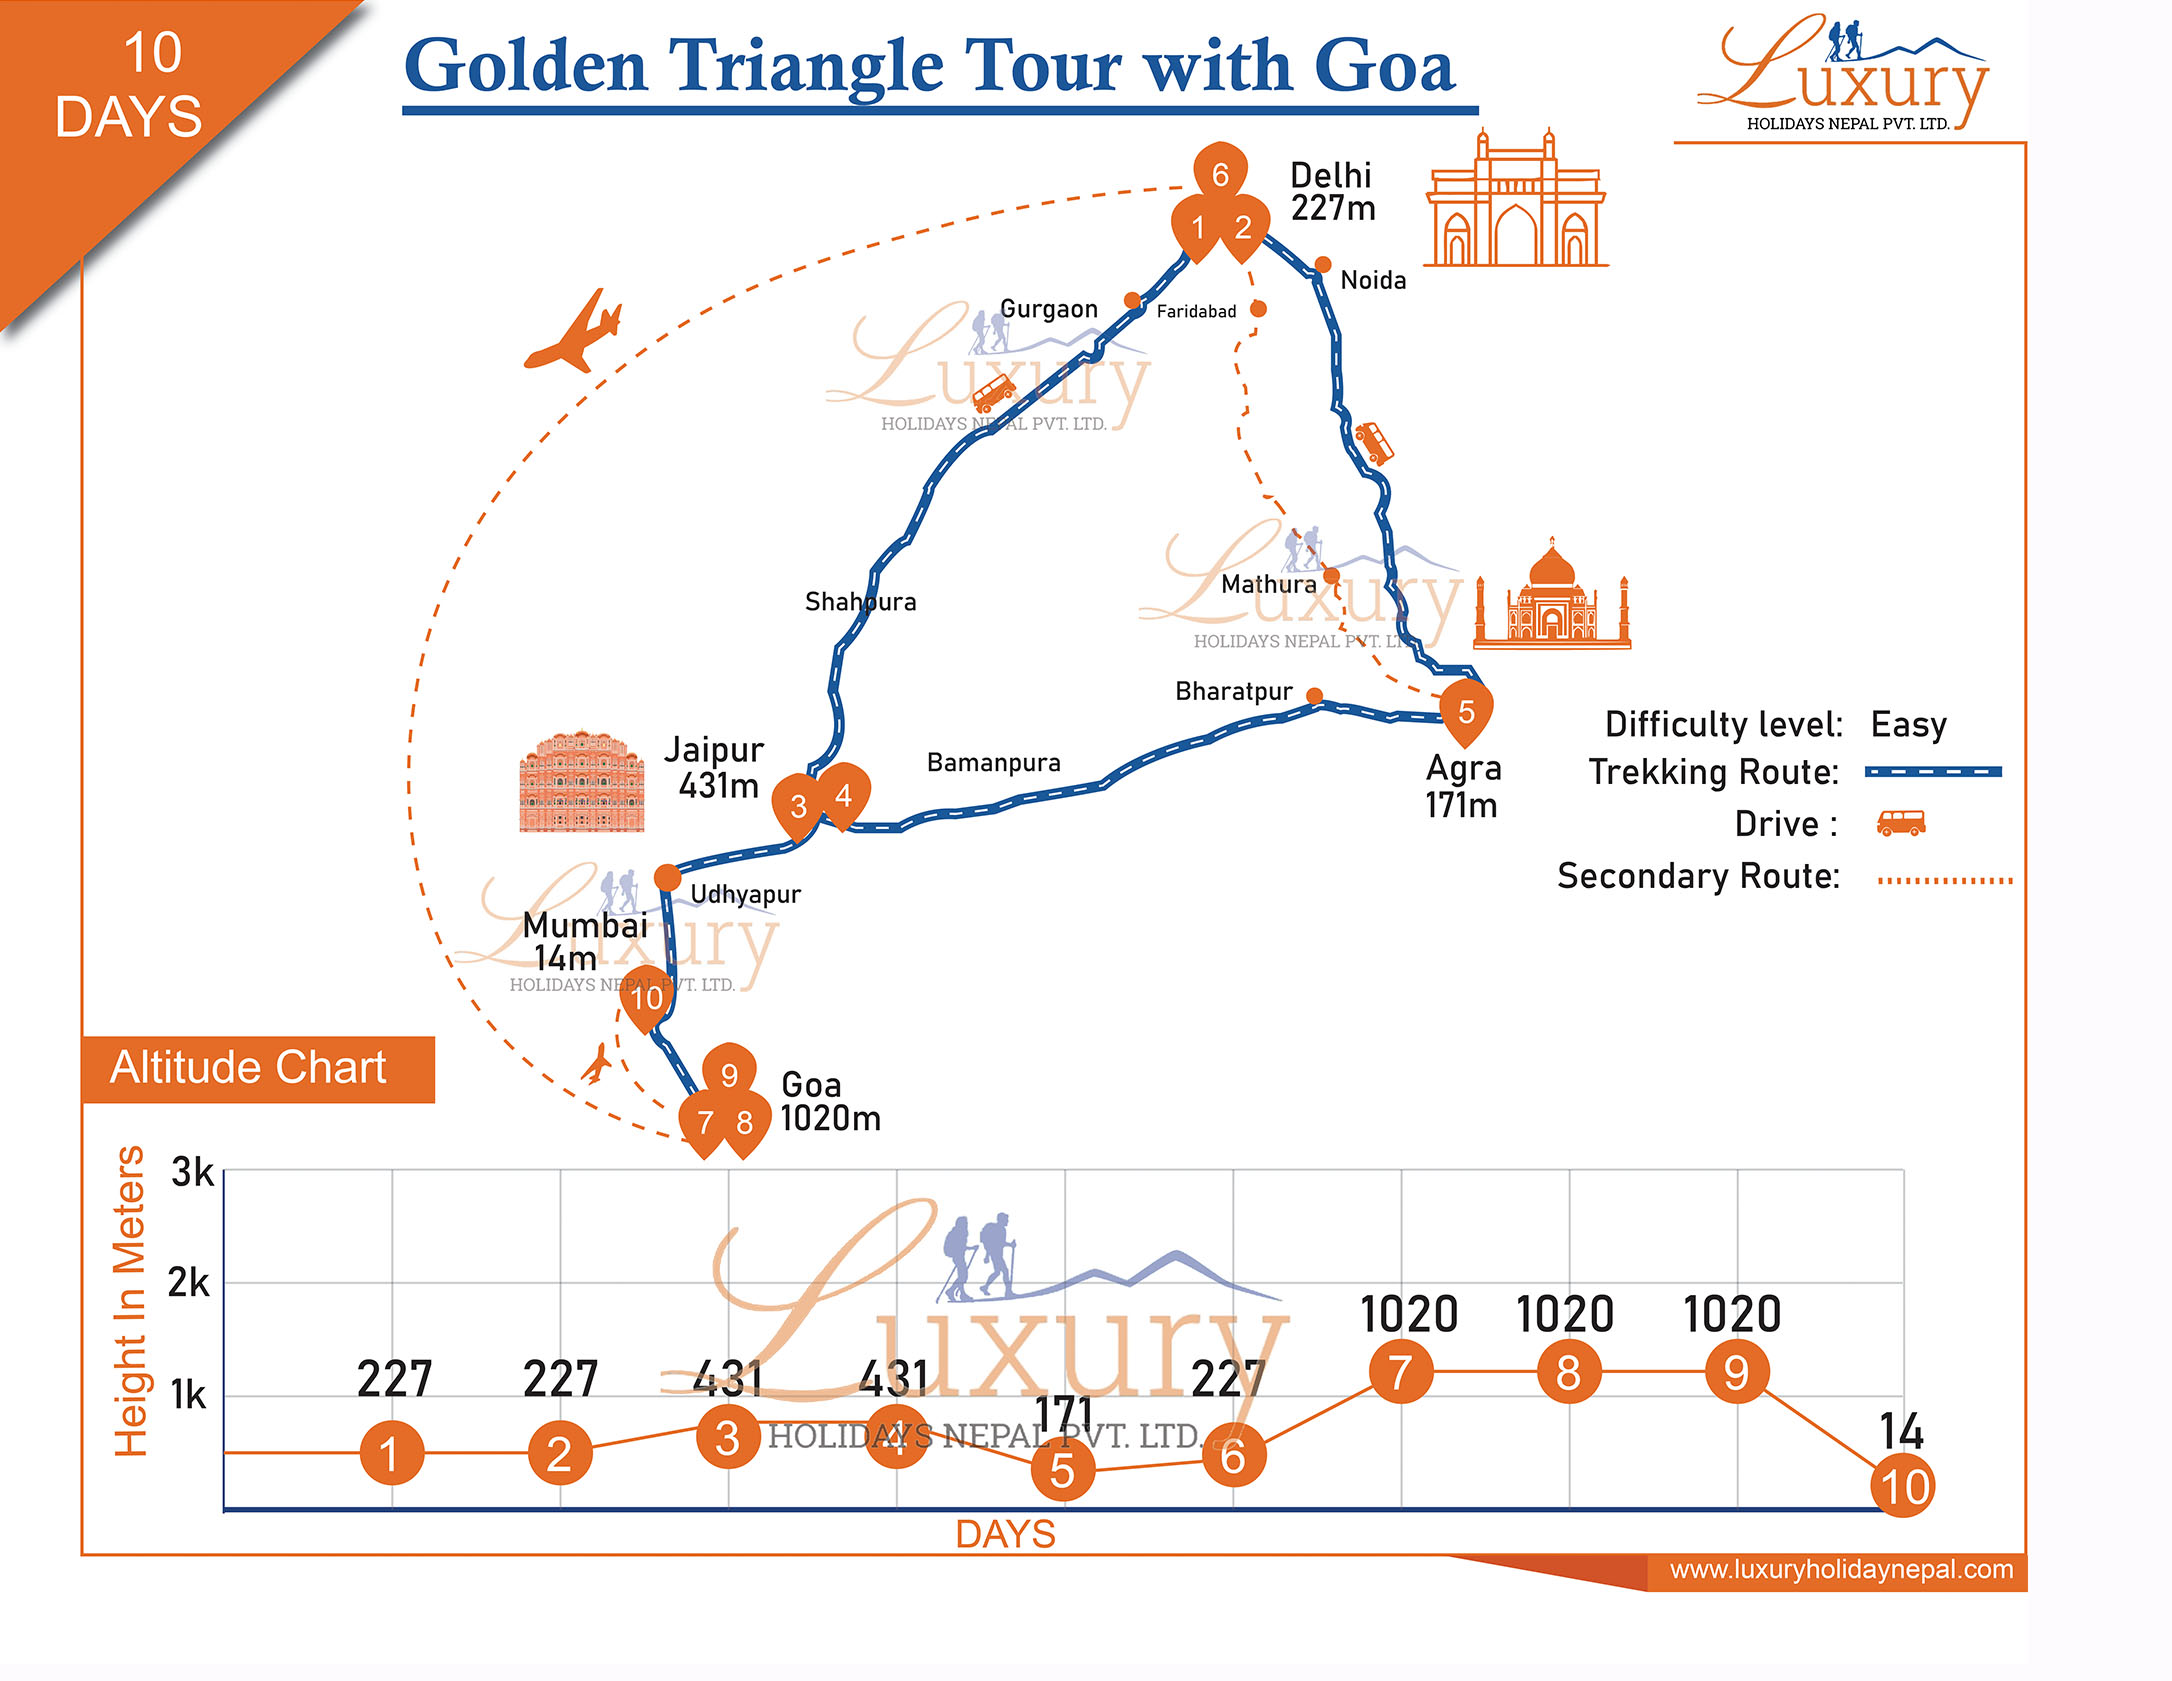 Golden Triangle with Goa Trip Map